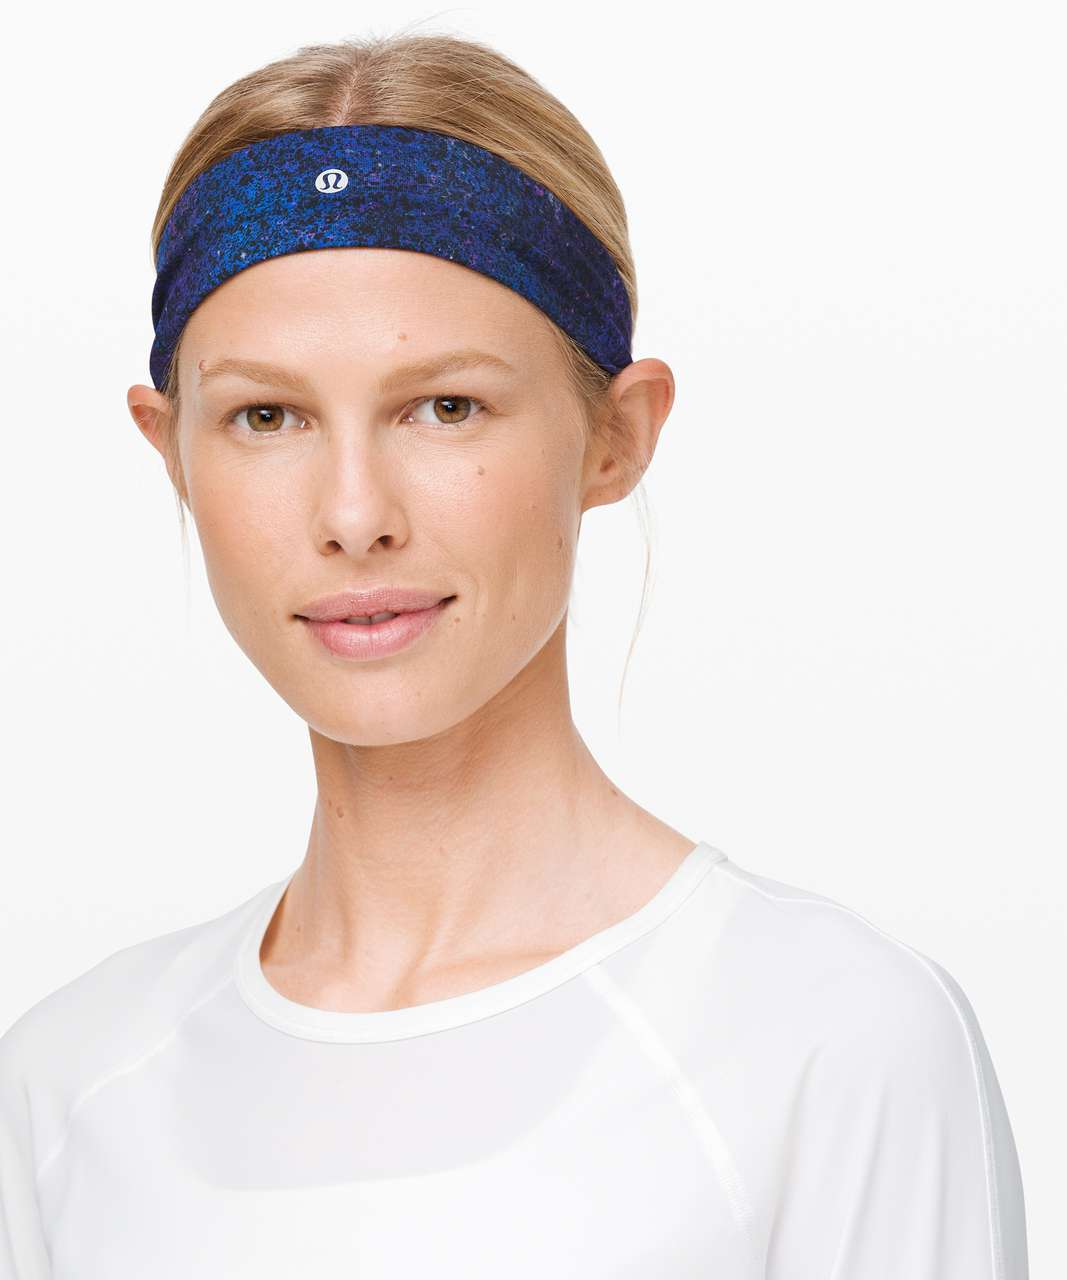 Lululemon Fly Away Tamer Headband - Polar Lights Blue Multi